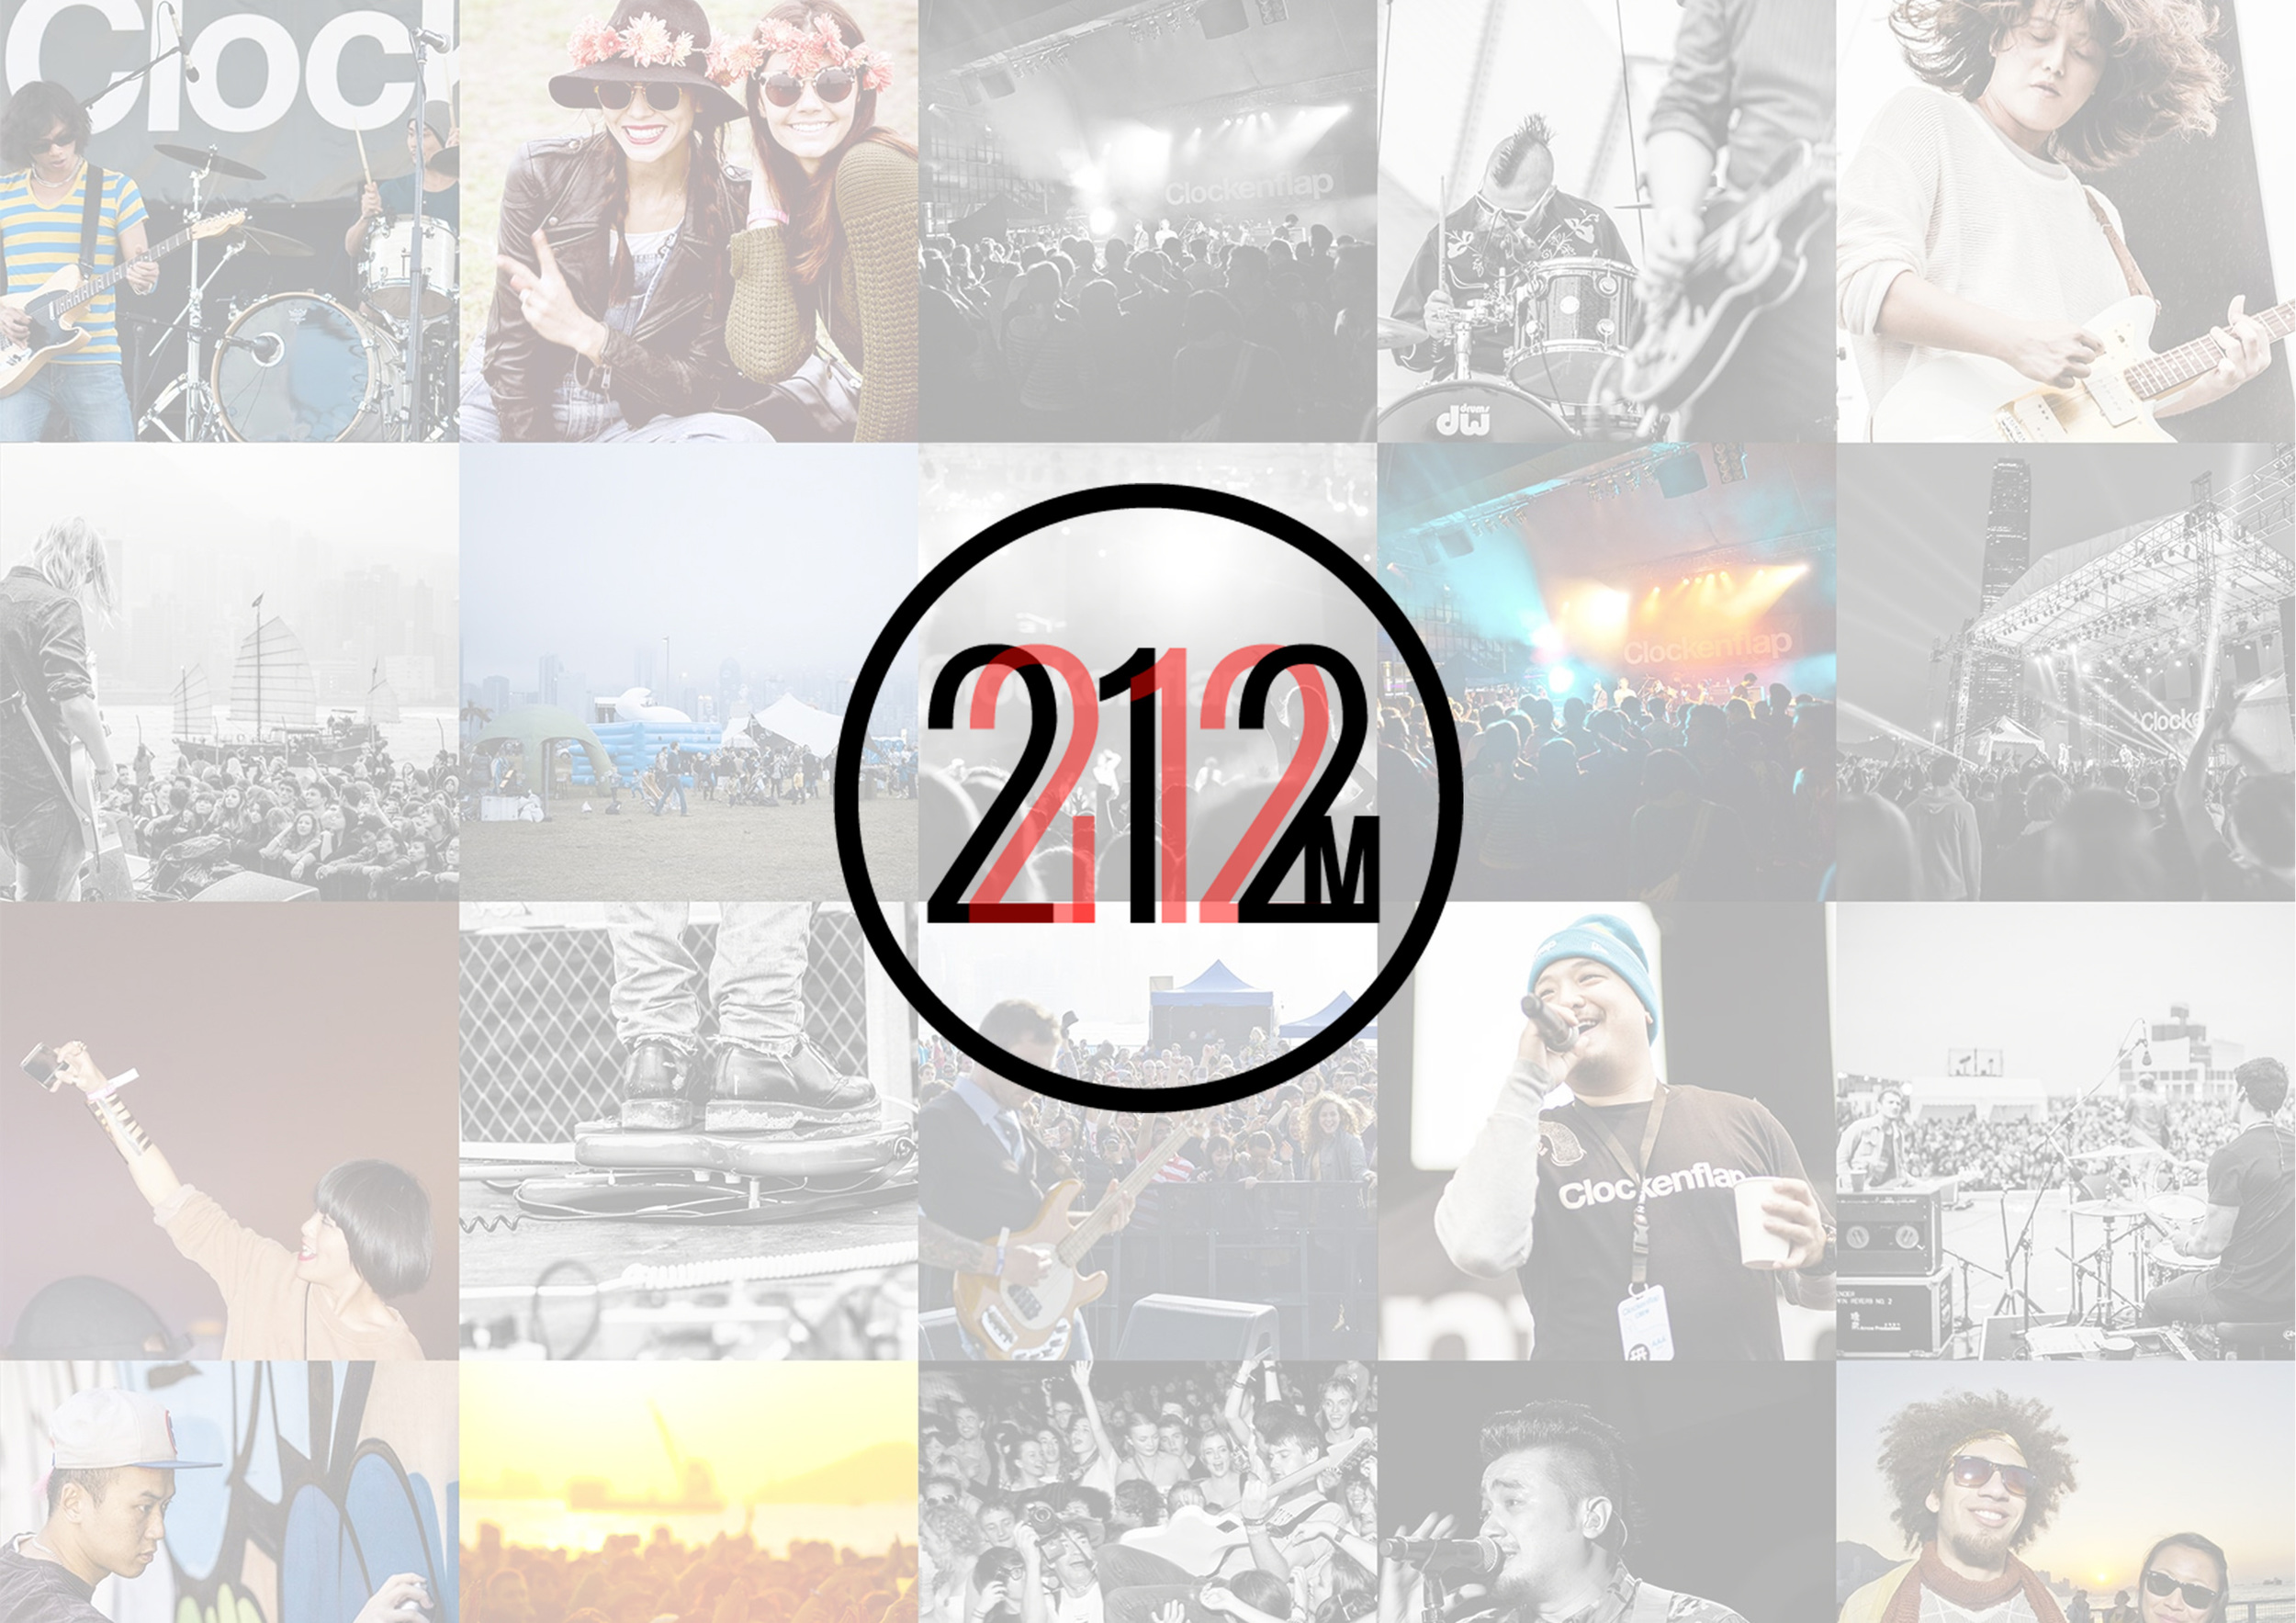 212 Music Group Branding